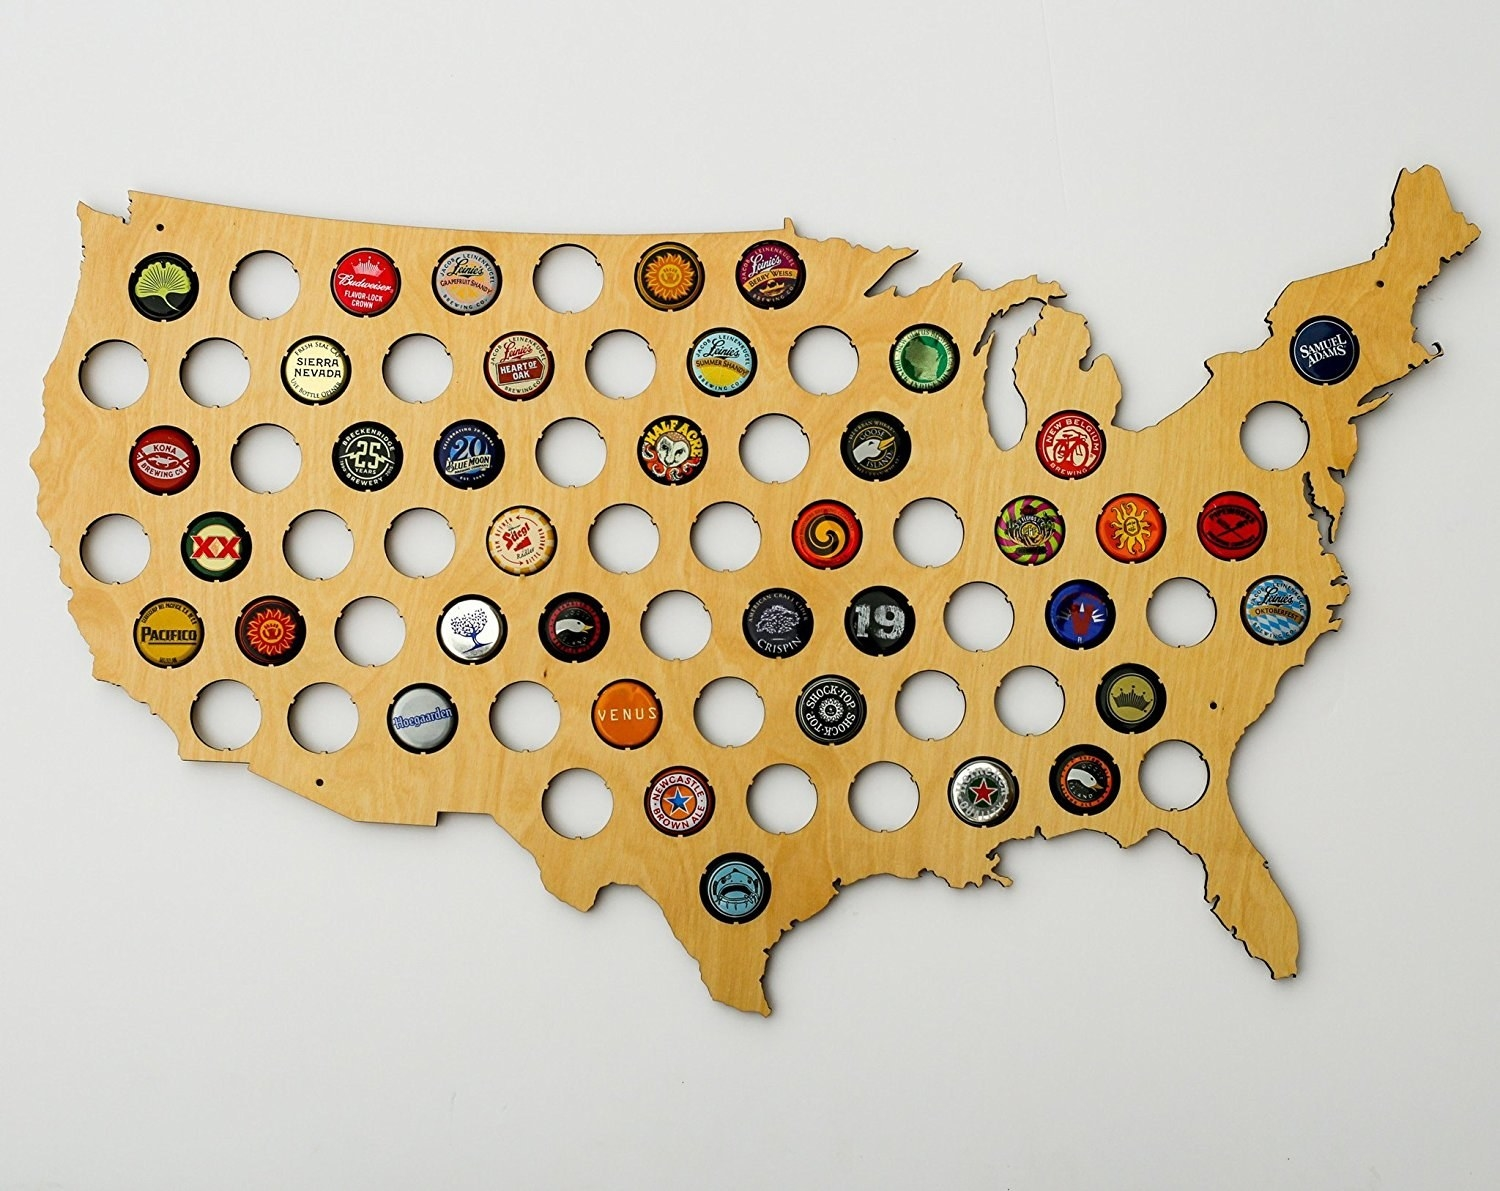 wooden united states map covered in holes for bottle caps